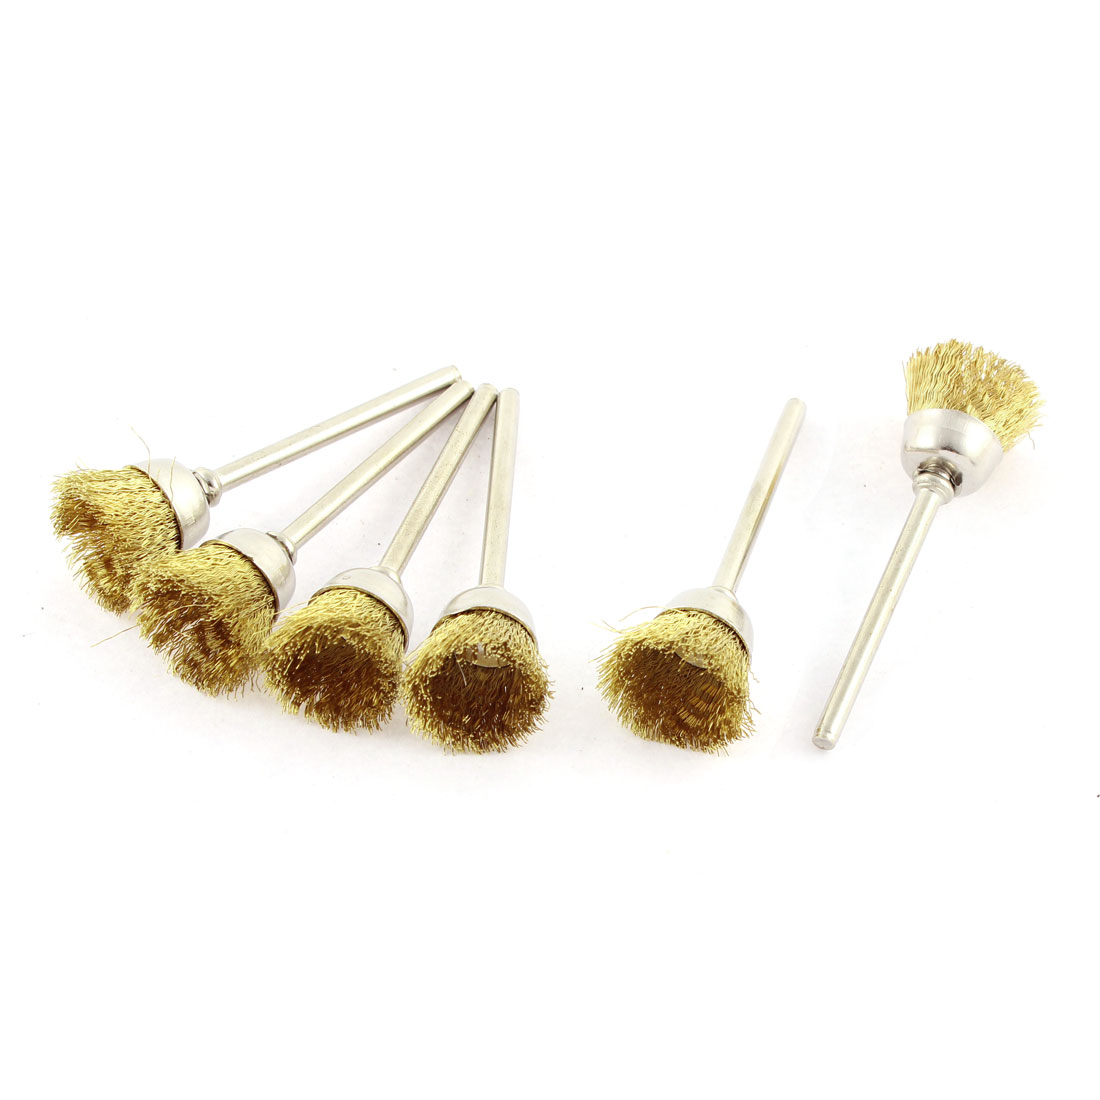 Gold Tone Brass Wire Polishing Brushes Jewelry Cleaning Buffing Tools 6pcs